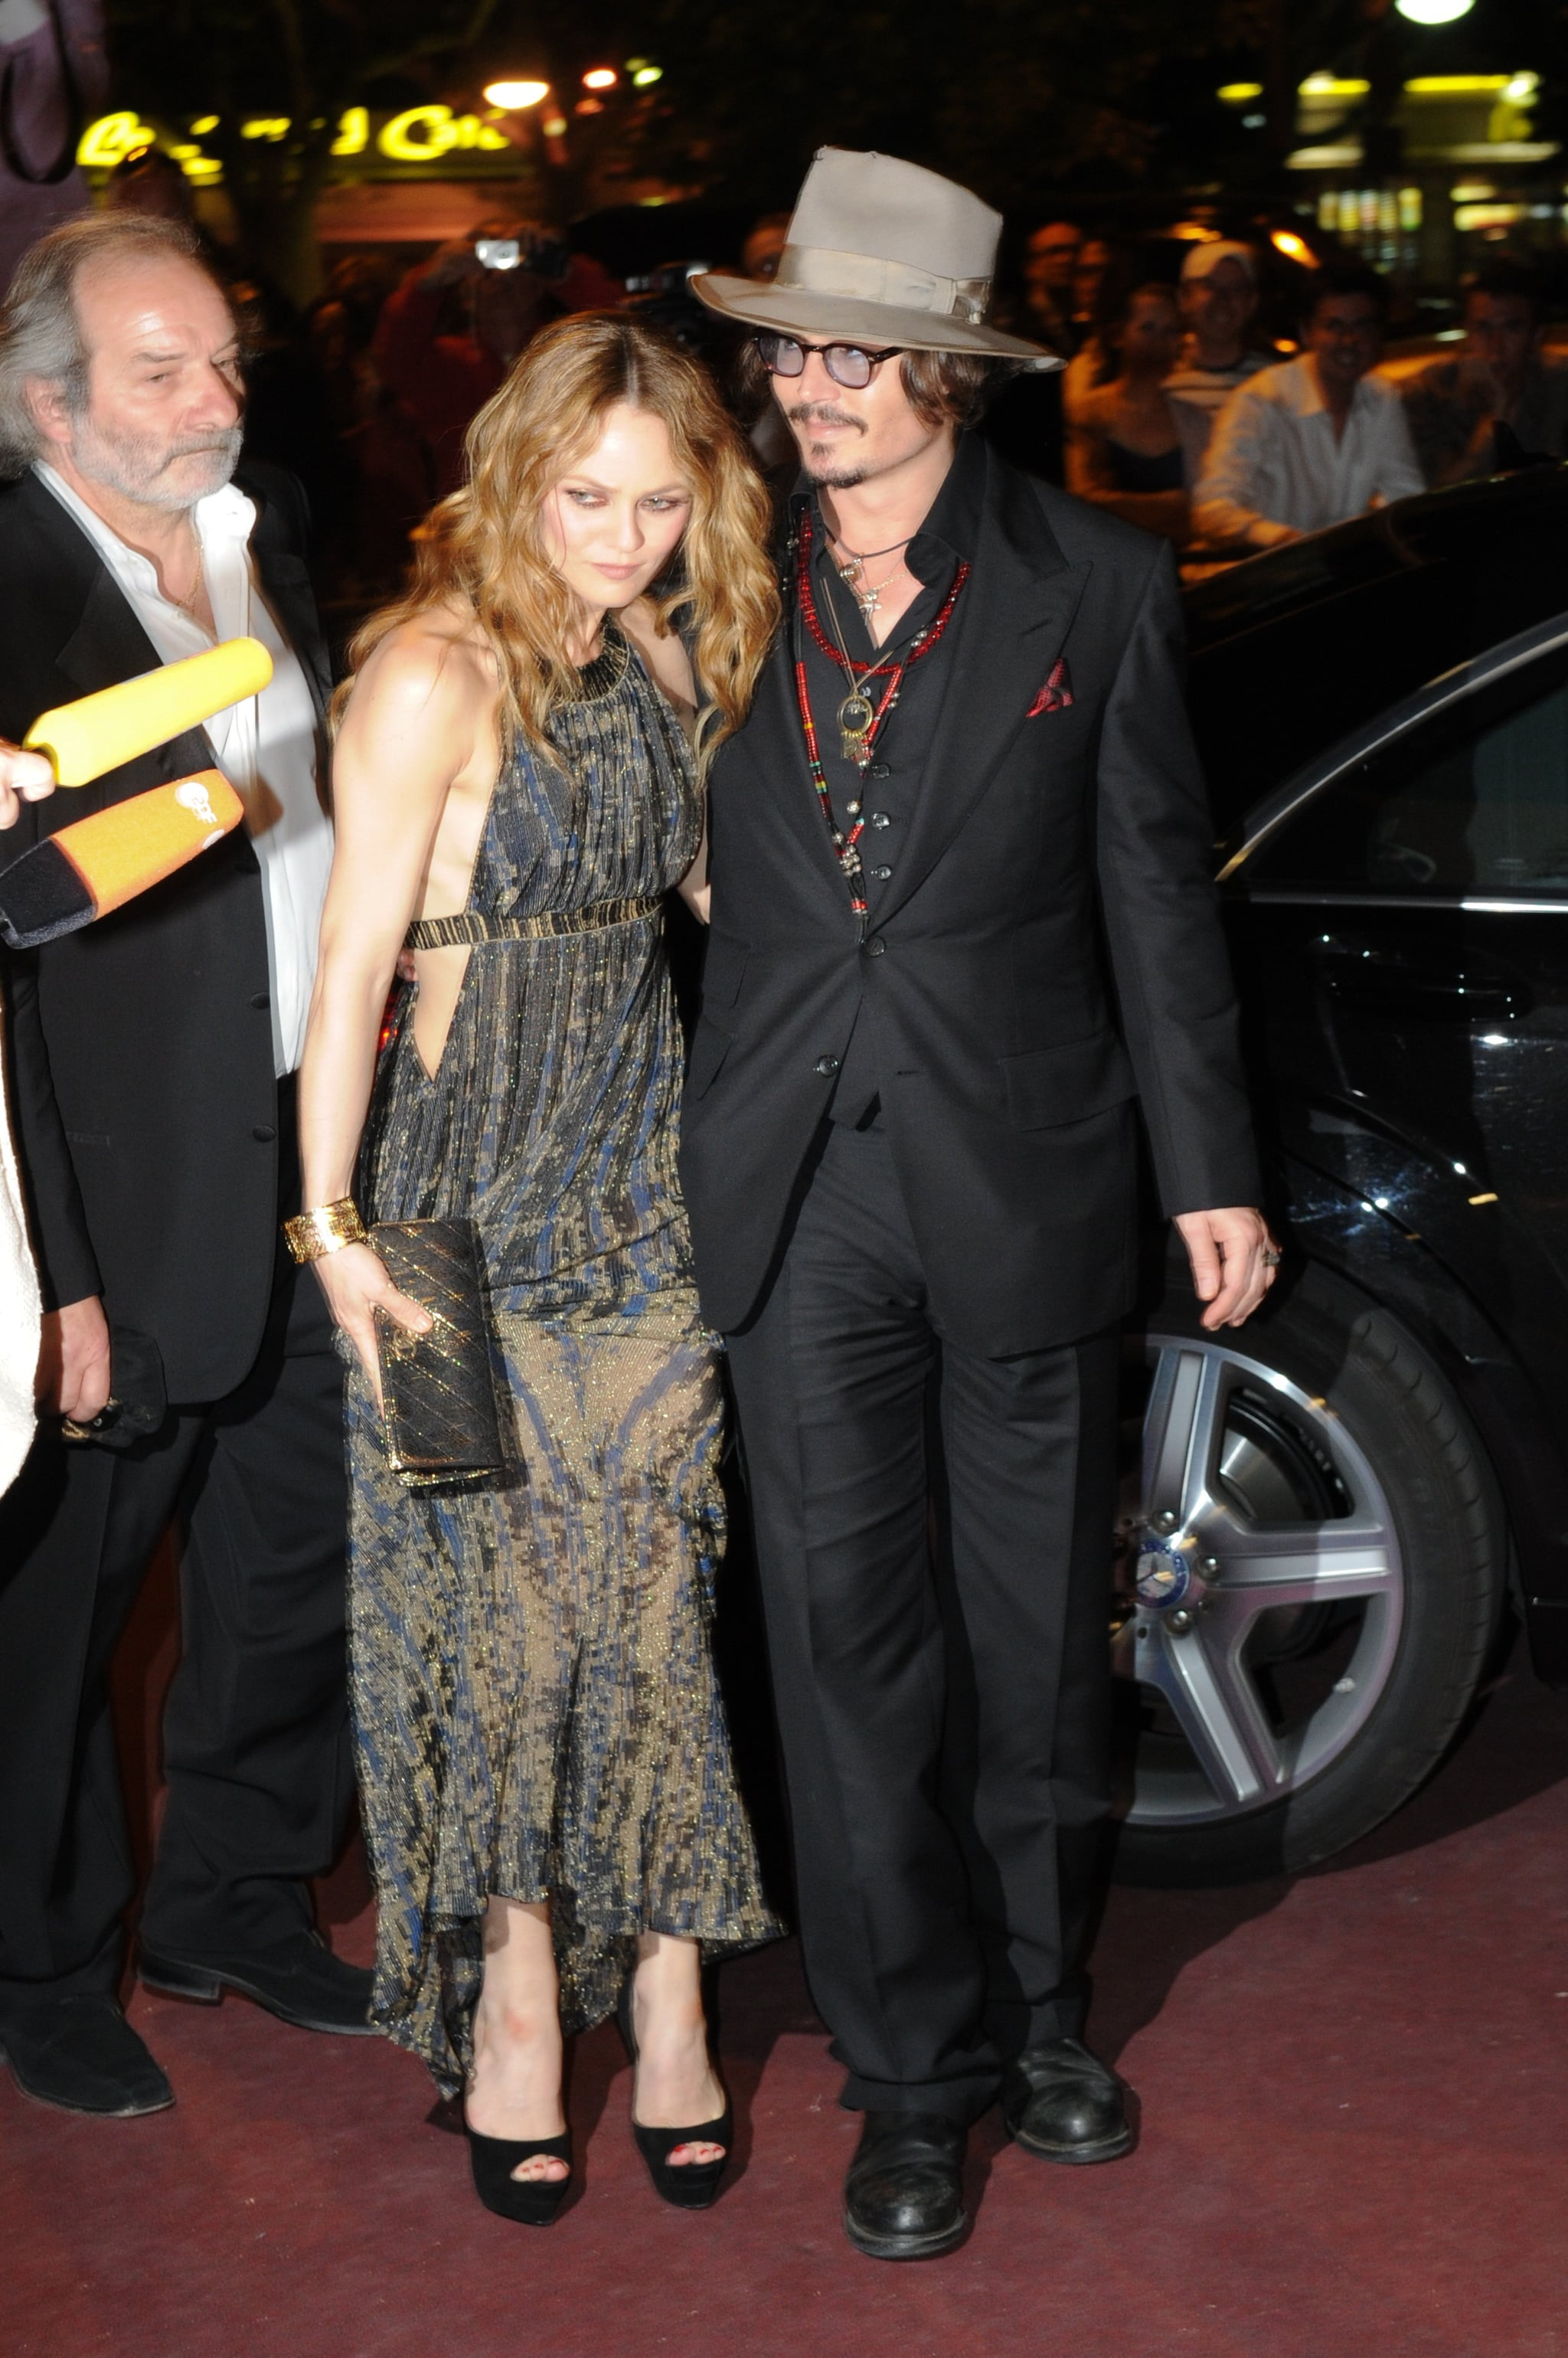 Pictures of Johnny Depp and Vanessa Paradis at Chanel ... ванесса паради